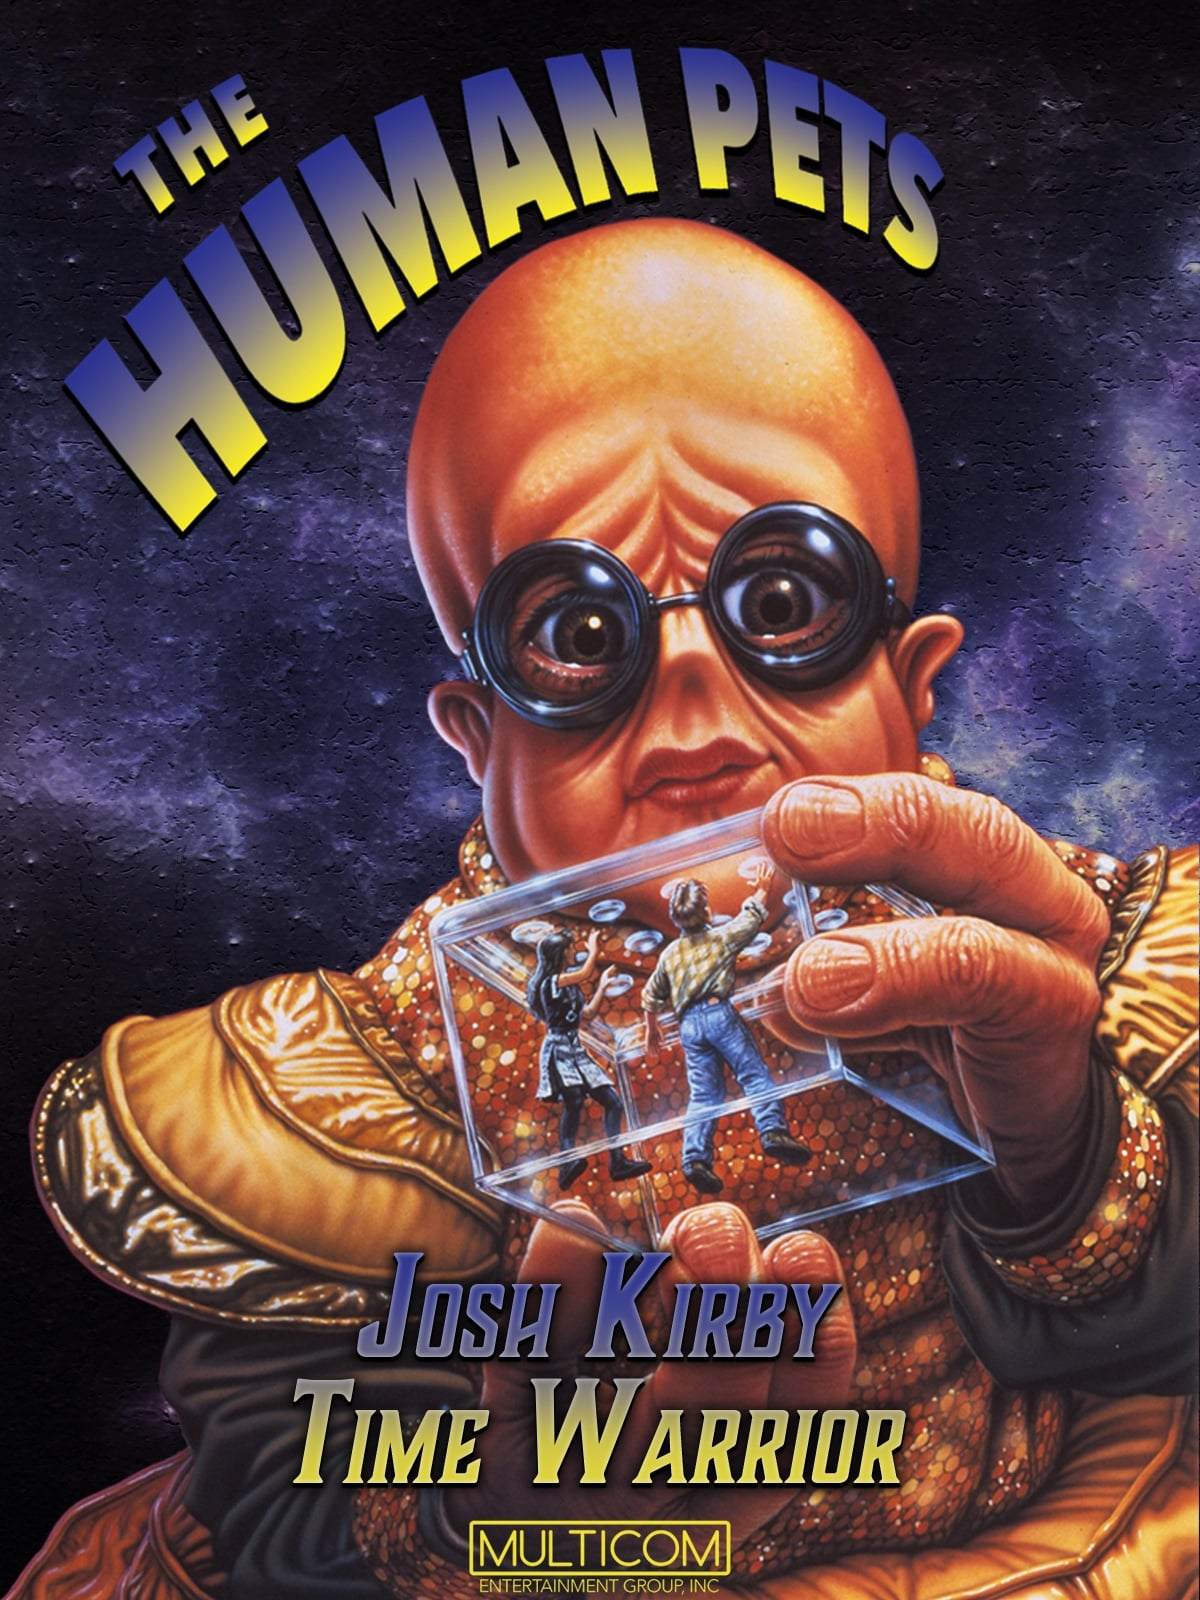 Josh Kirby: Time Warrior! Chap. 2: The Human Pets on FREECABLE TV